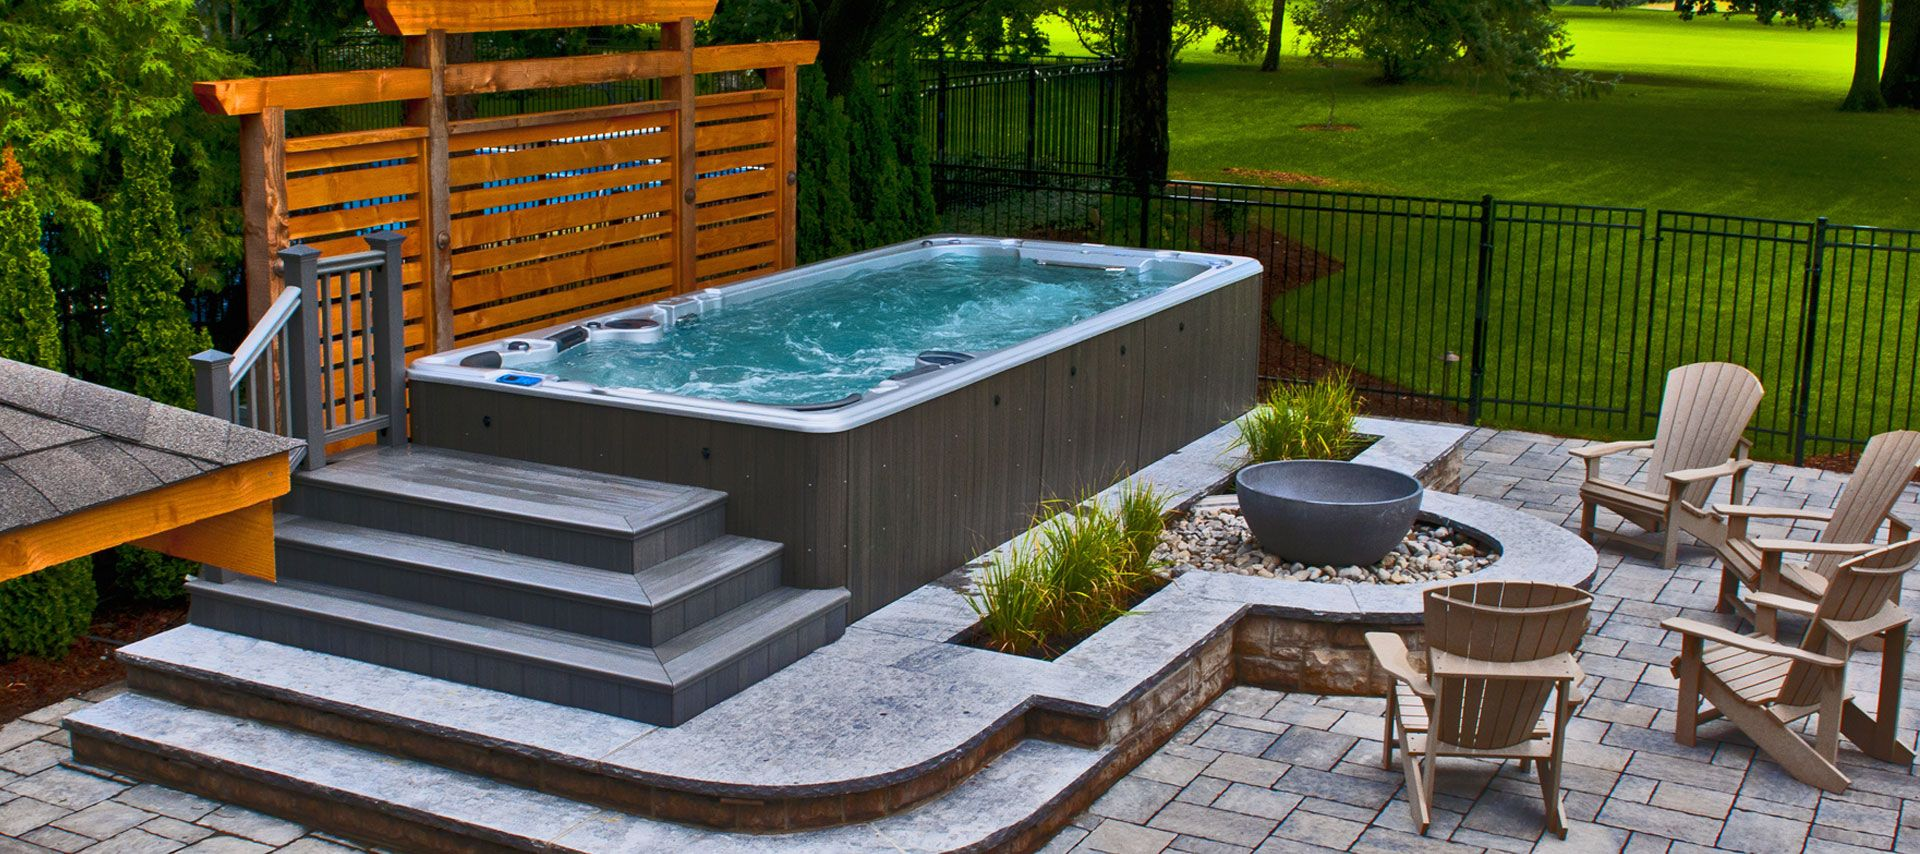 Hydropool hot tubs swim spas and accessories jacuzzi for Swimming pool spa designs